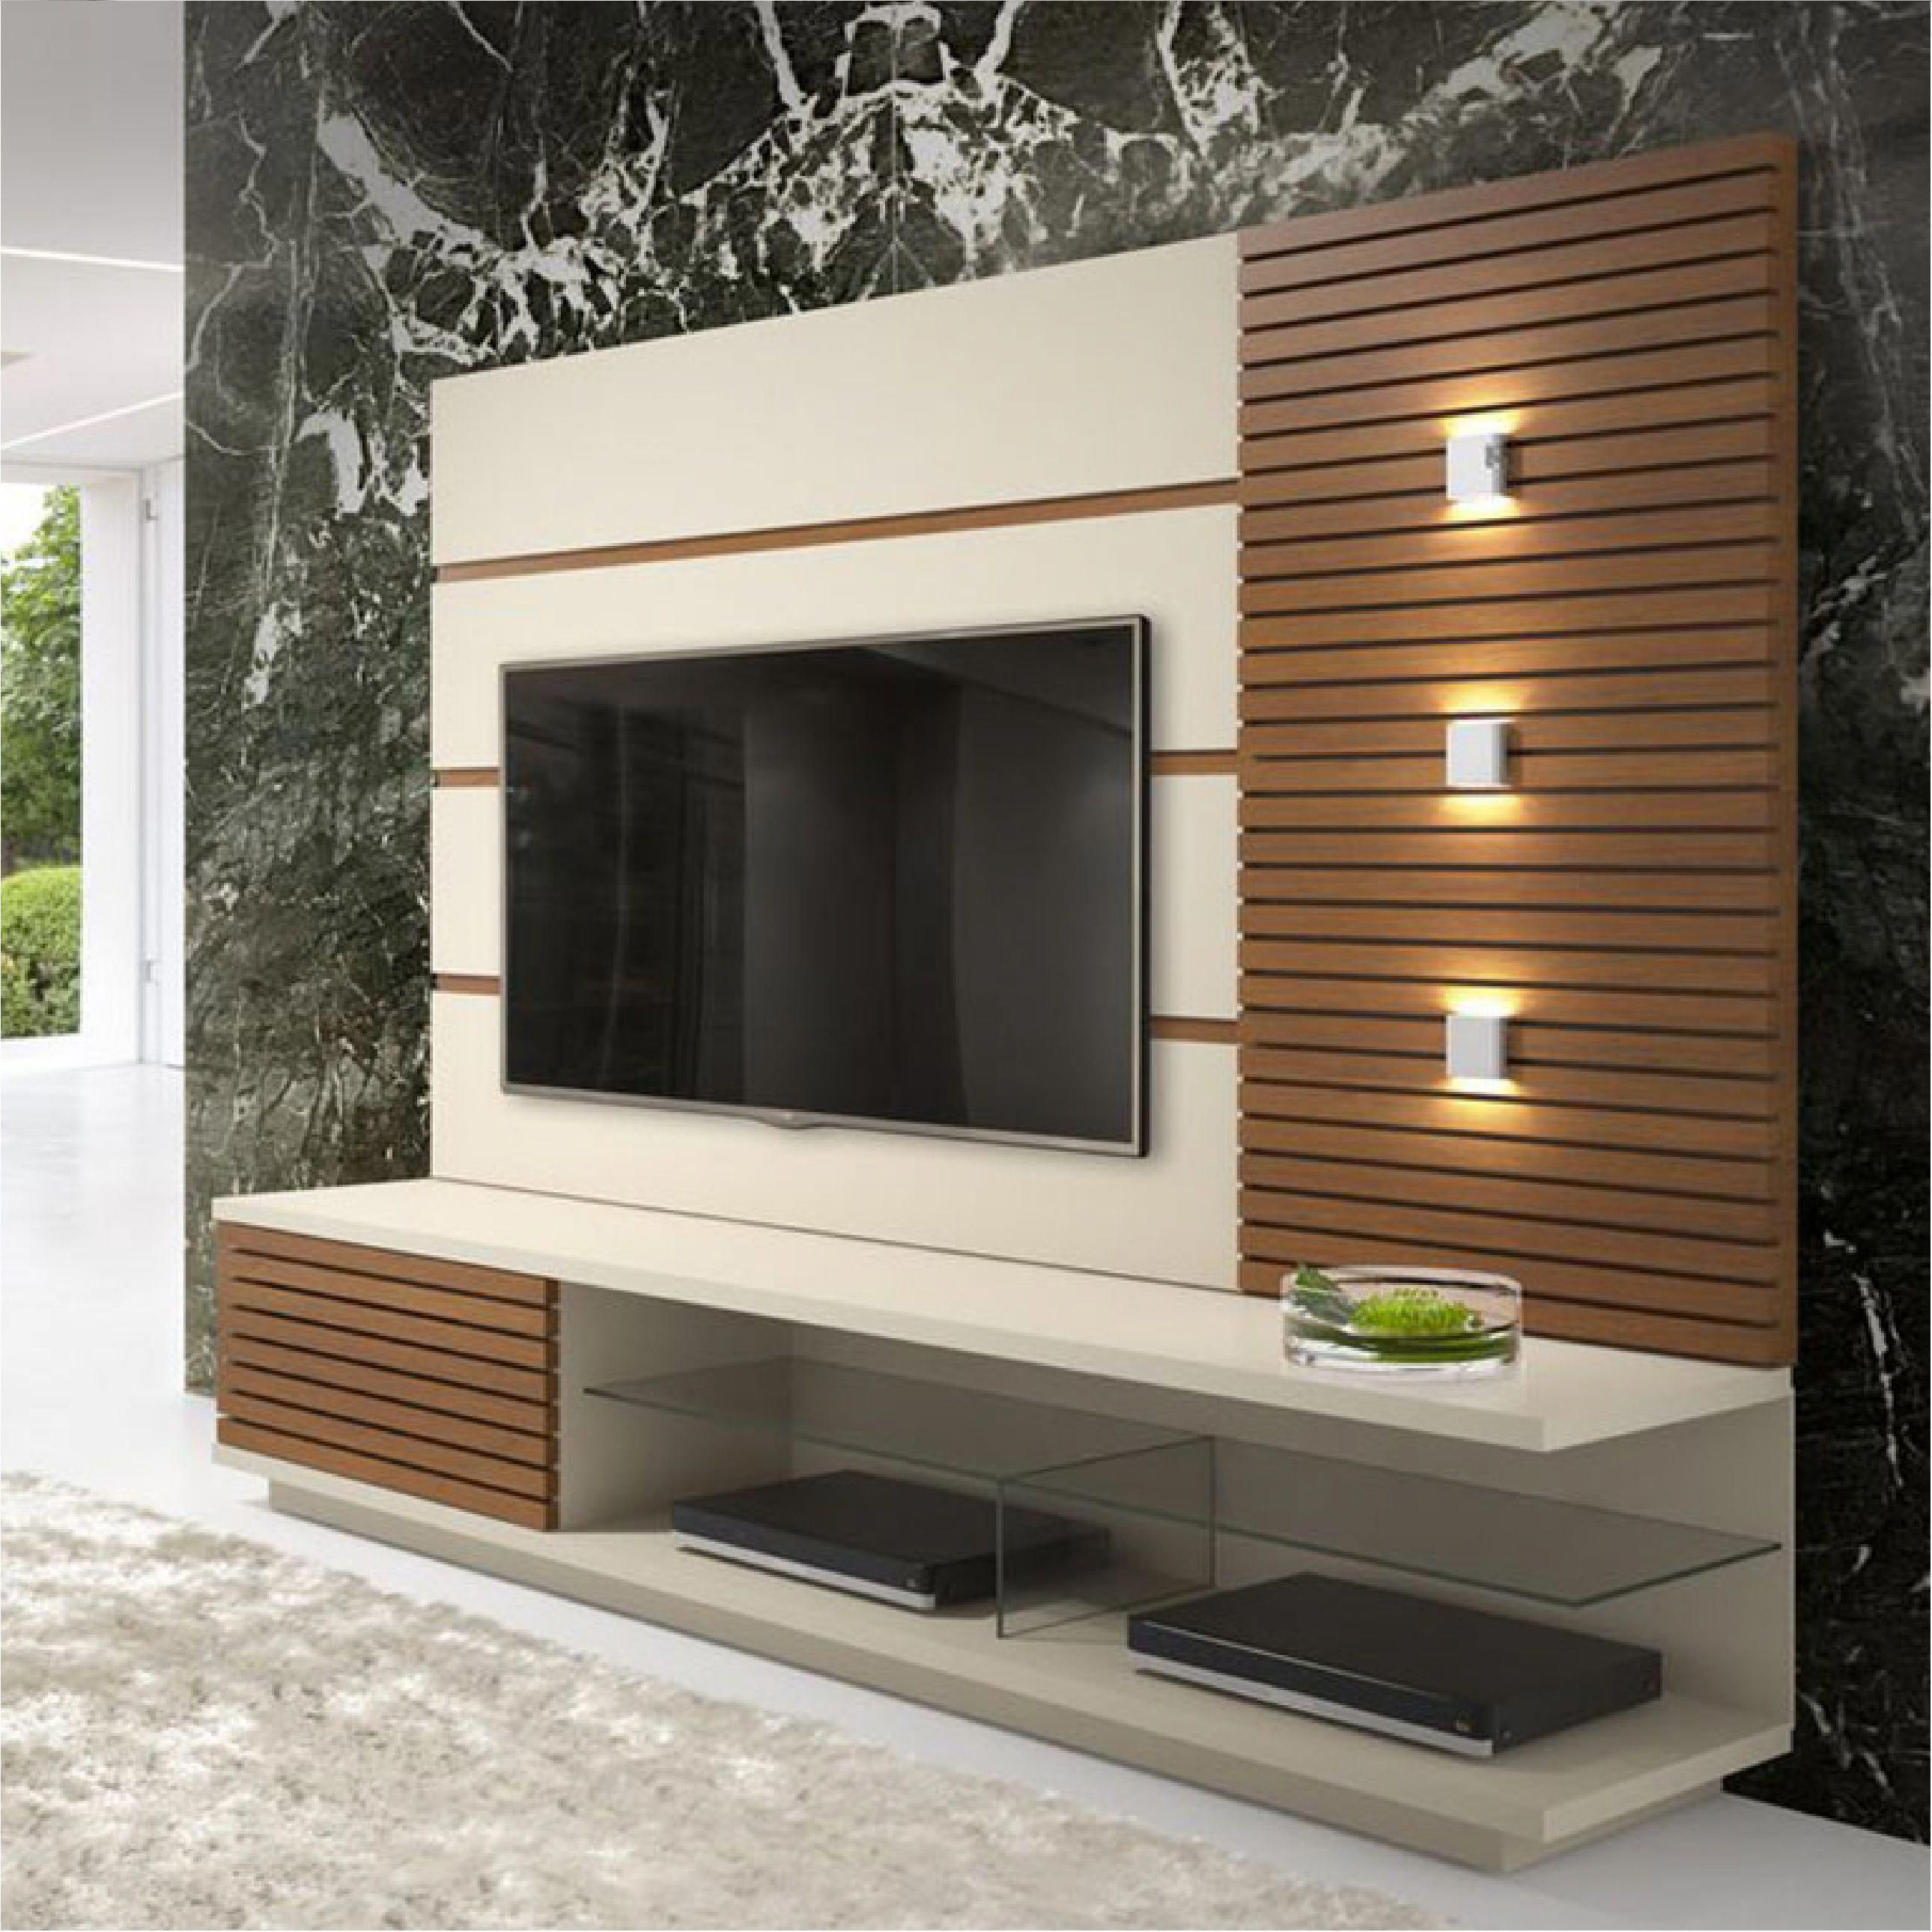 Pin By Gaya On Home Decor Bedroom In 2020 Modern Tv Wall Units